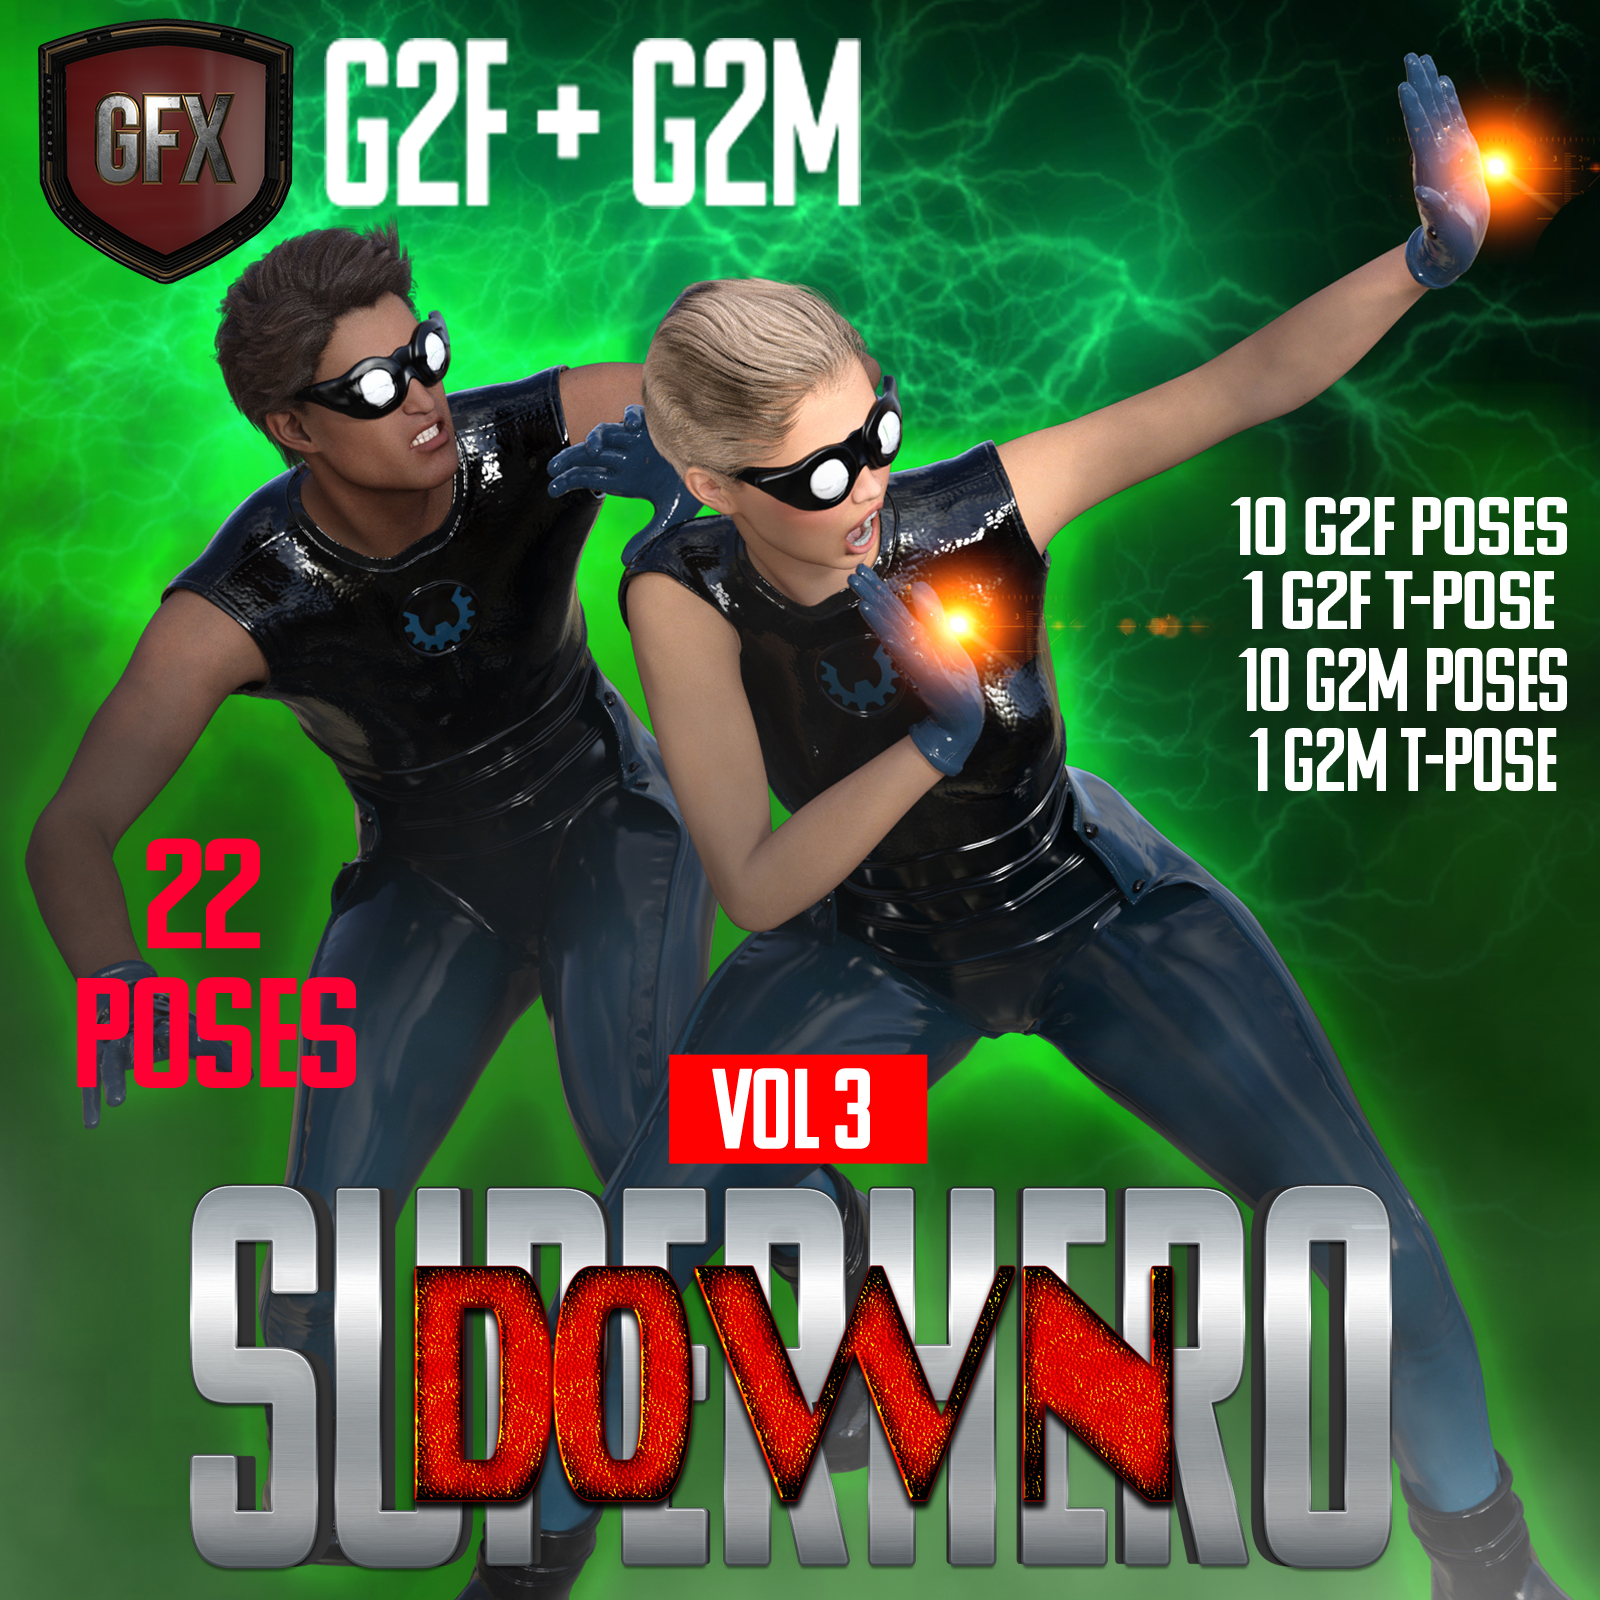 SuperHero Down for G2F and G2M Volume 3